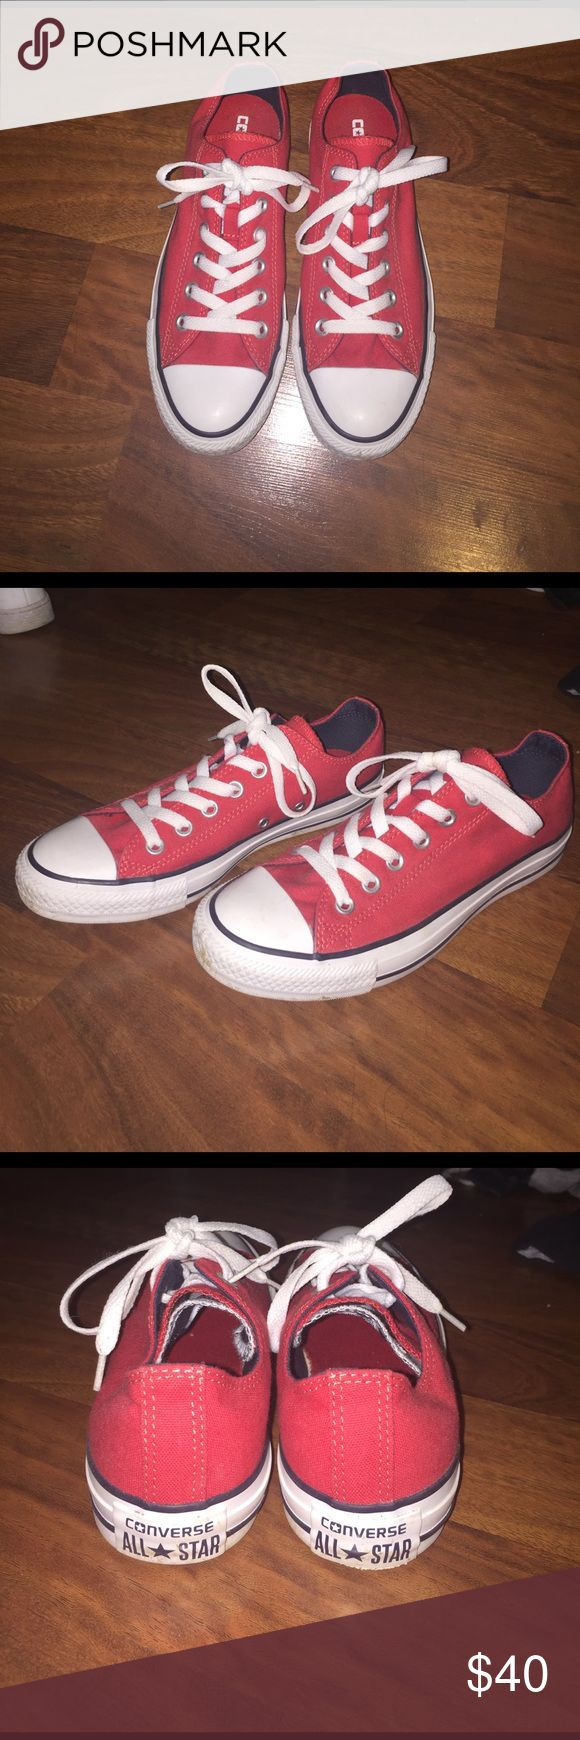 Sparkly clean red low top converse!! Red converse wth white laces. Great condition. Only worn a few times. Converse Shoes Sneakers